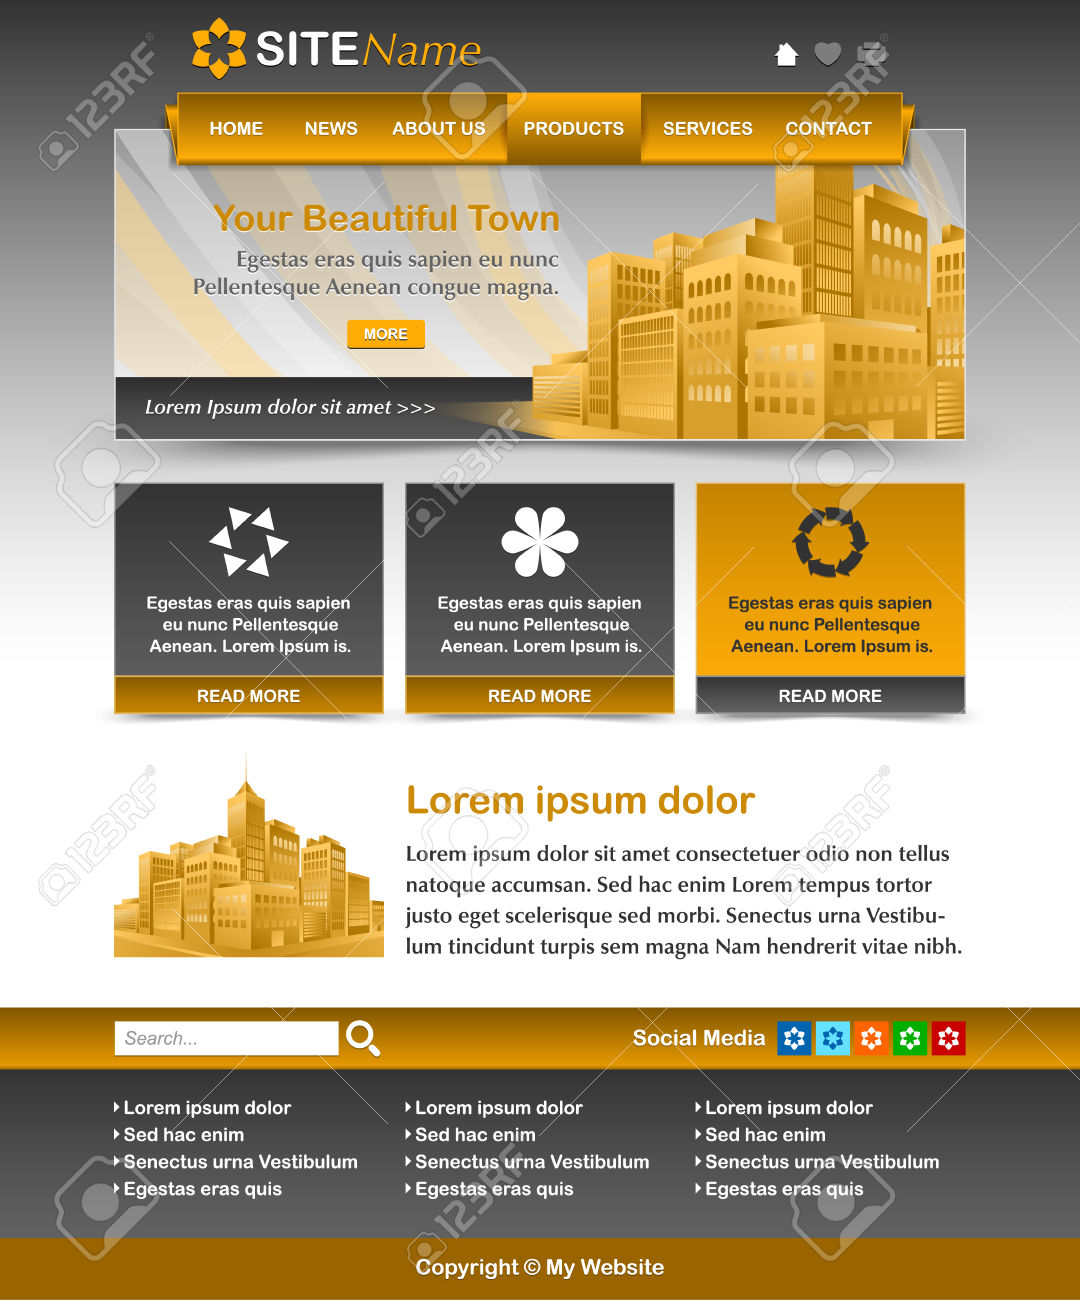 Easy Customizable Yellow Ochre And Dark Grey Website Template.